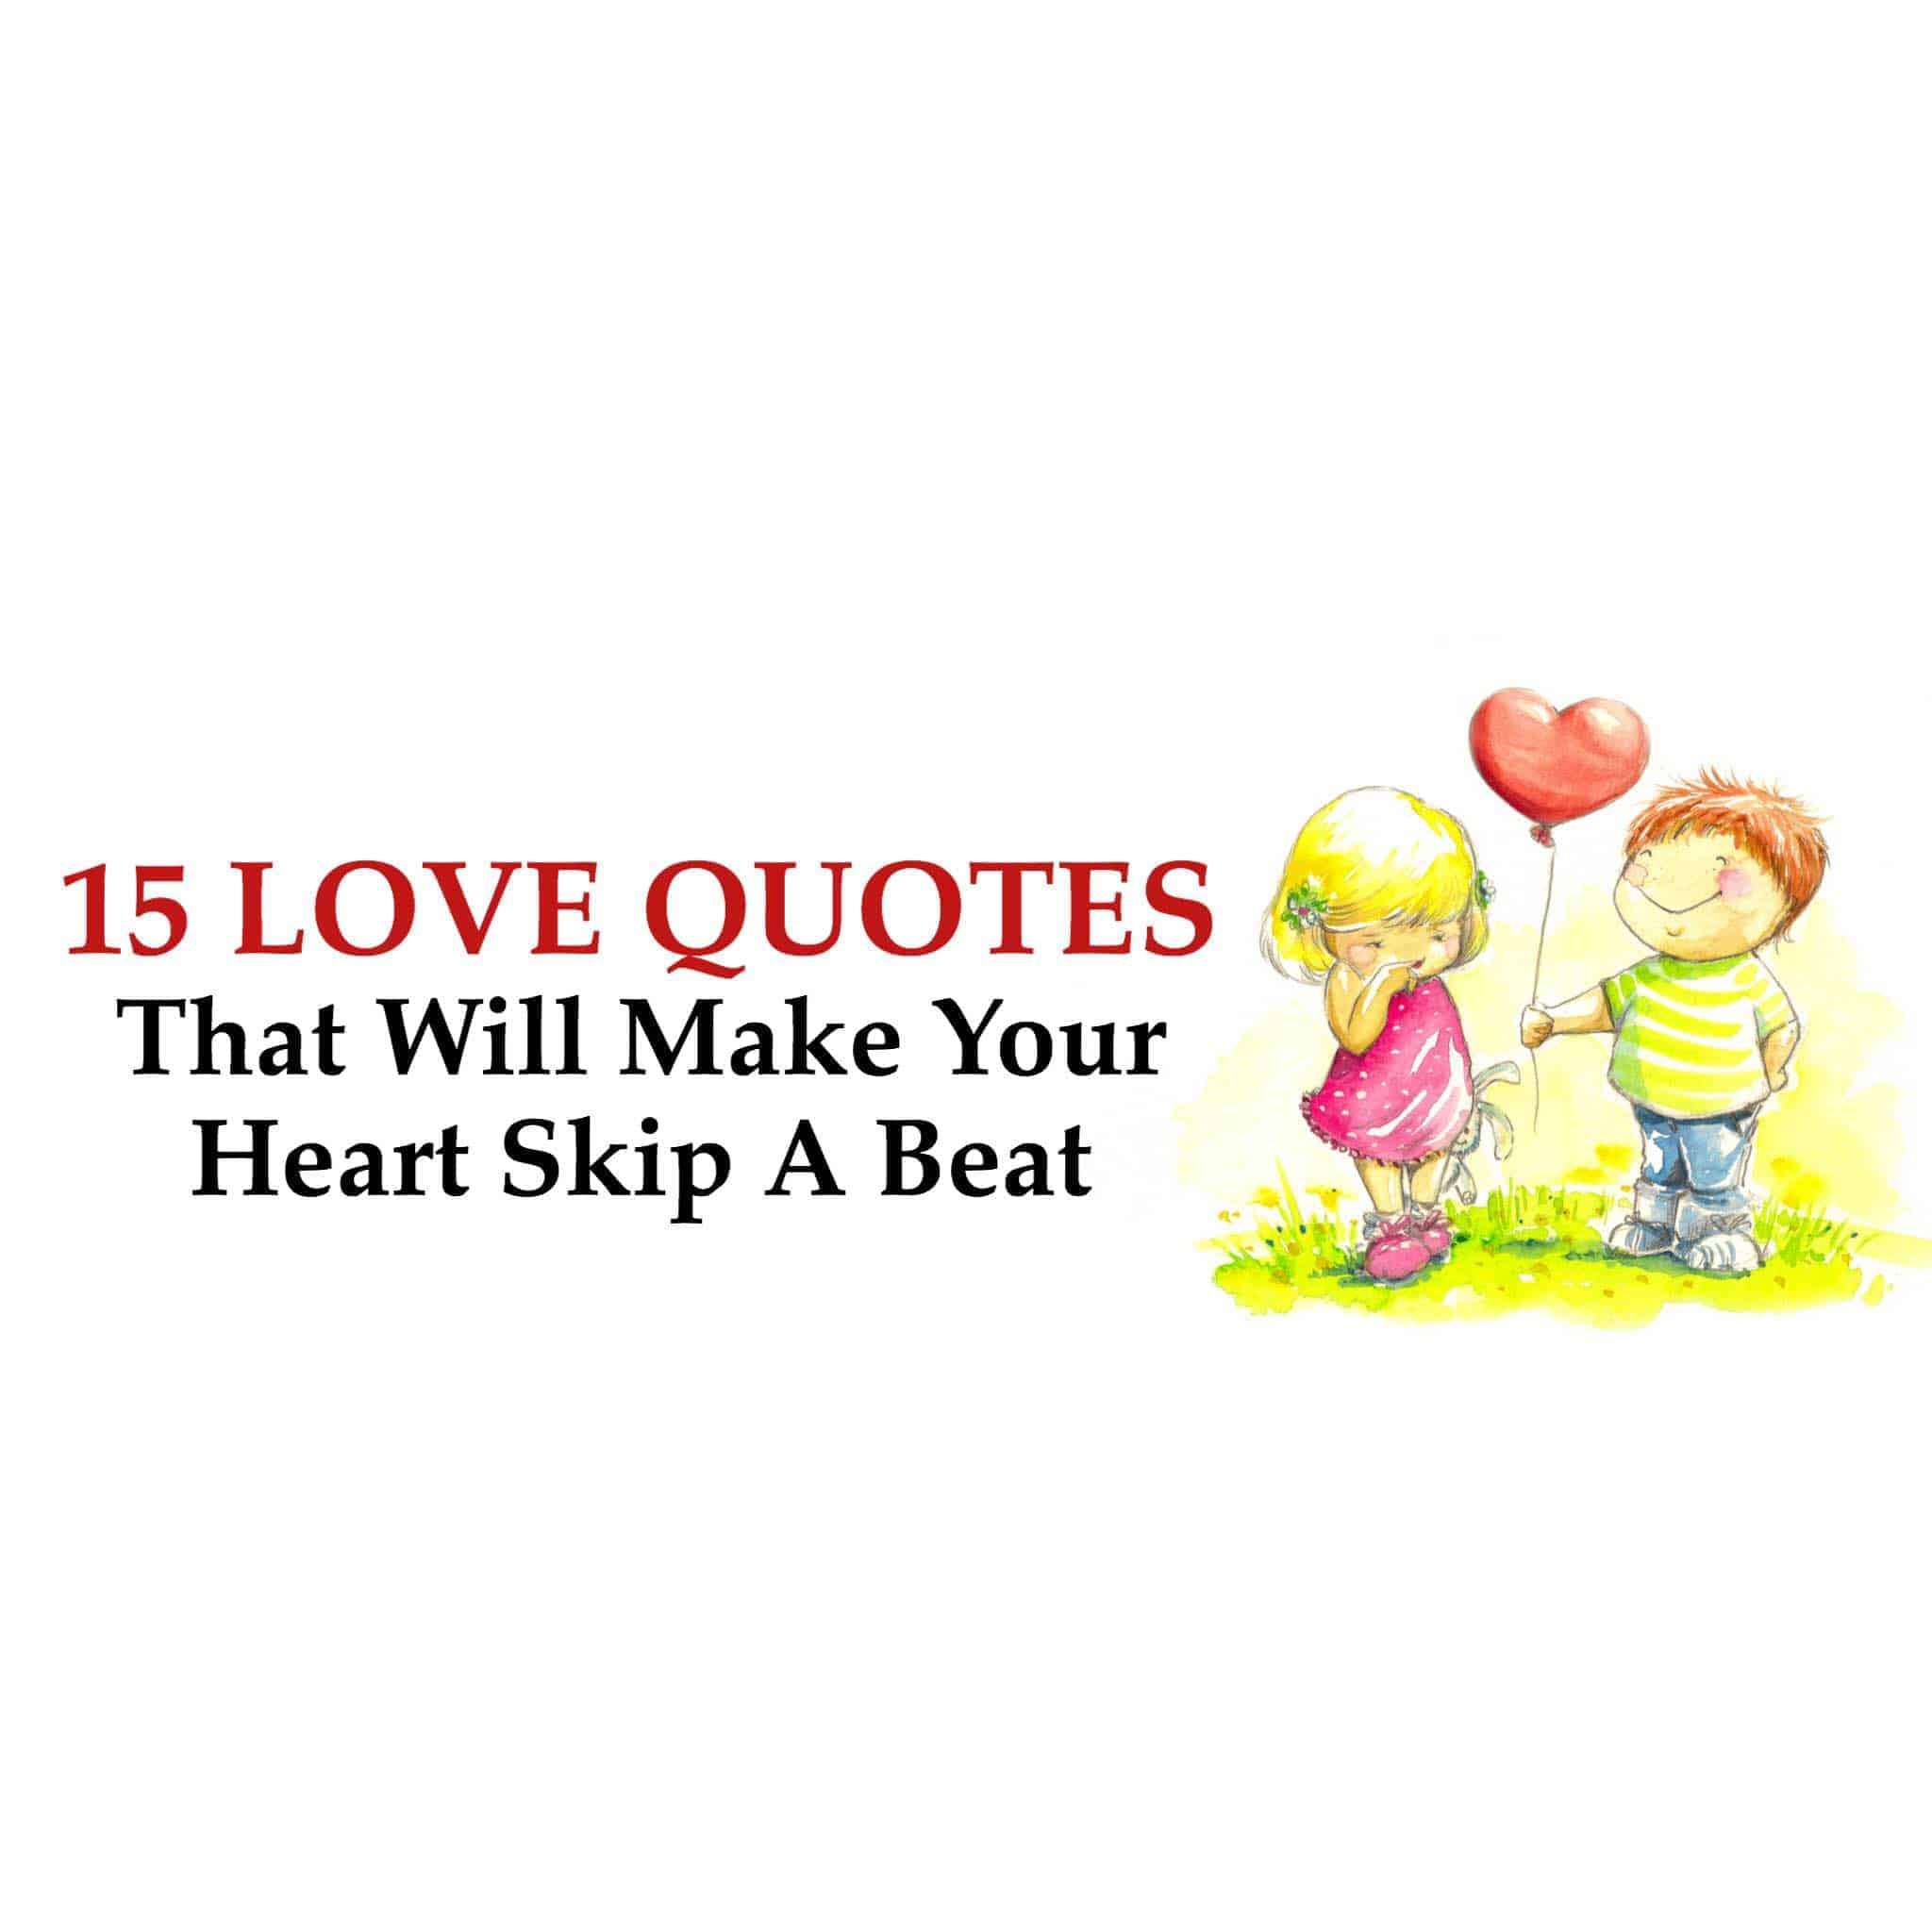 Love Quotes 15 Love Quotes That Will Make Your Heart Skip A Beat